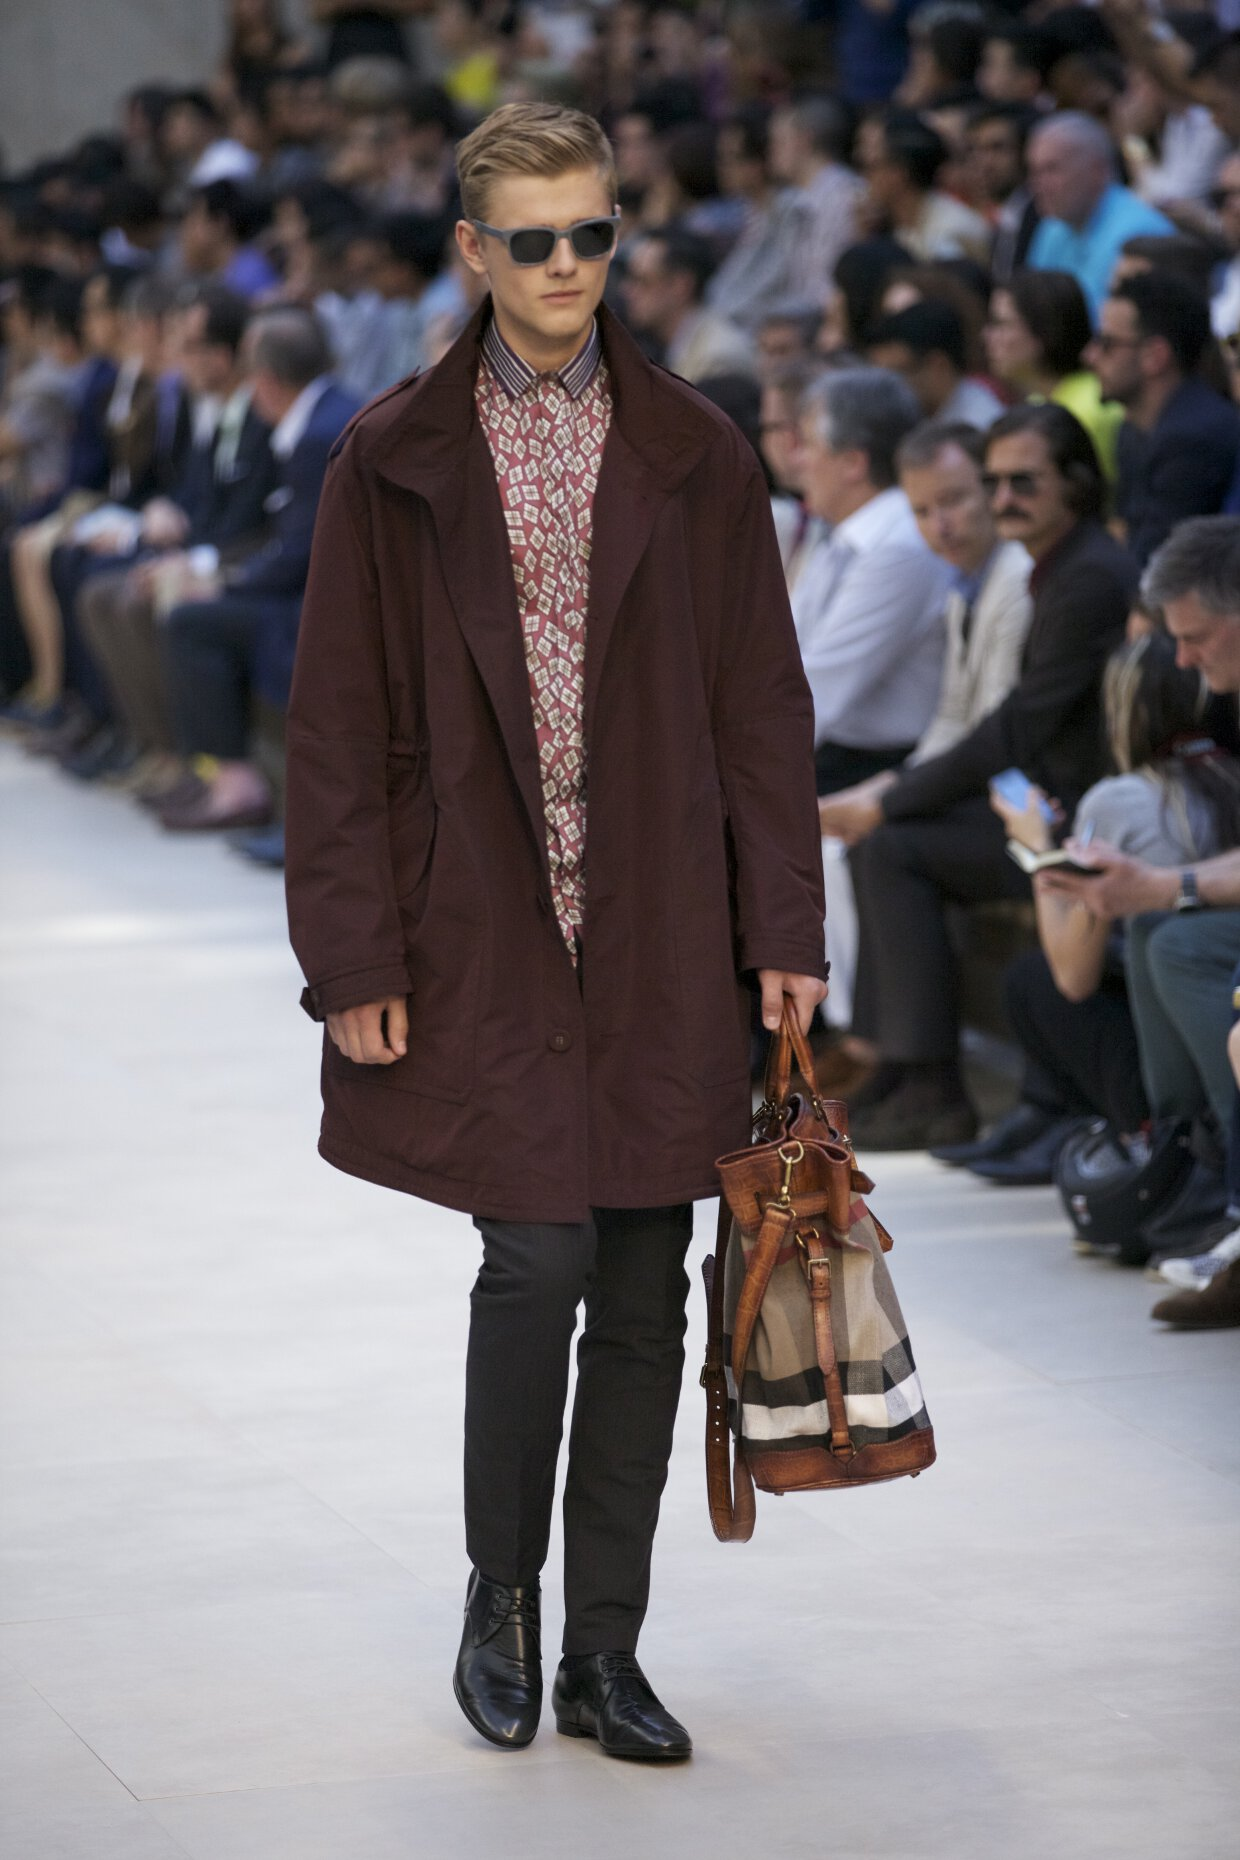 Burberry Prorsum Spring Summer 2013 Menswear Collection Milano Fashion Week